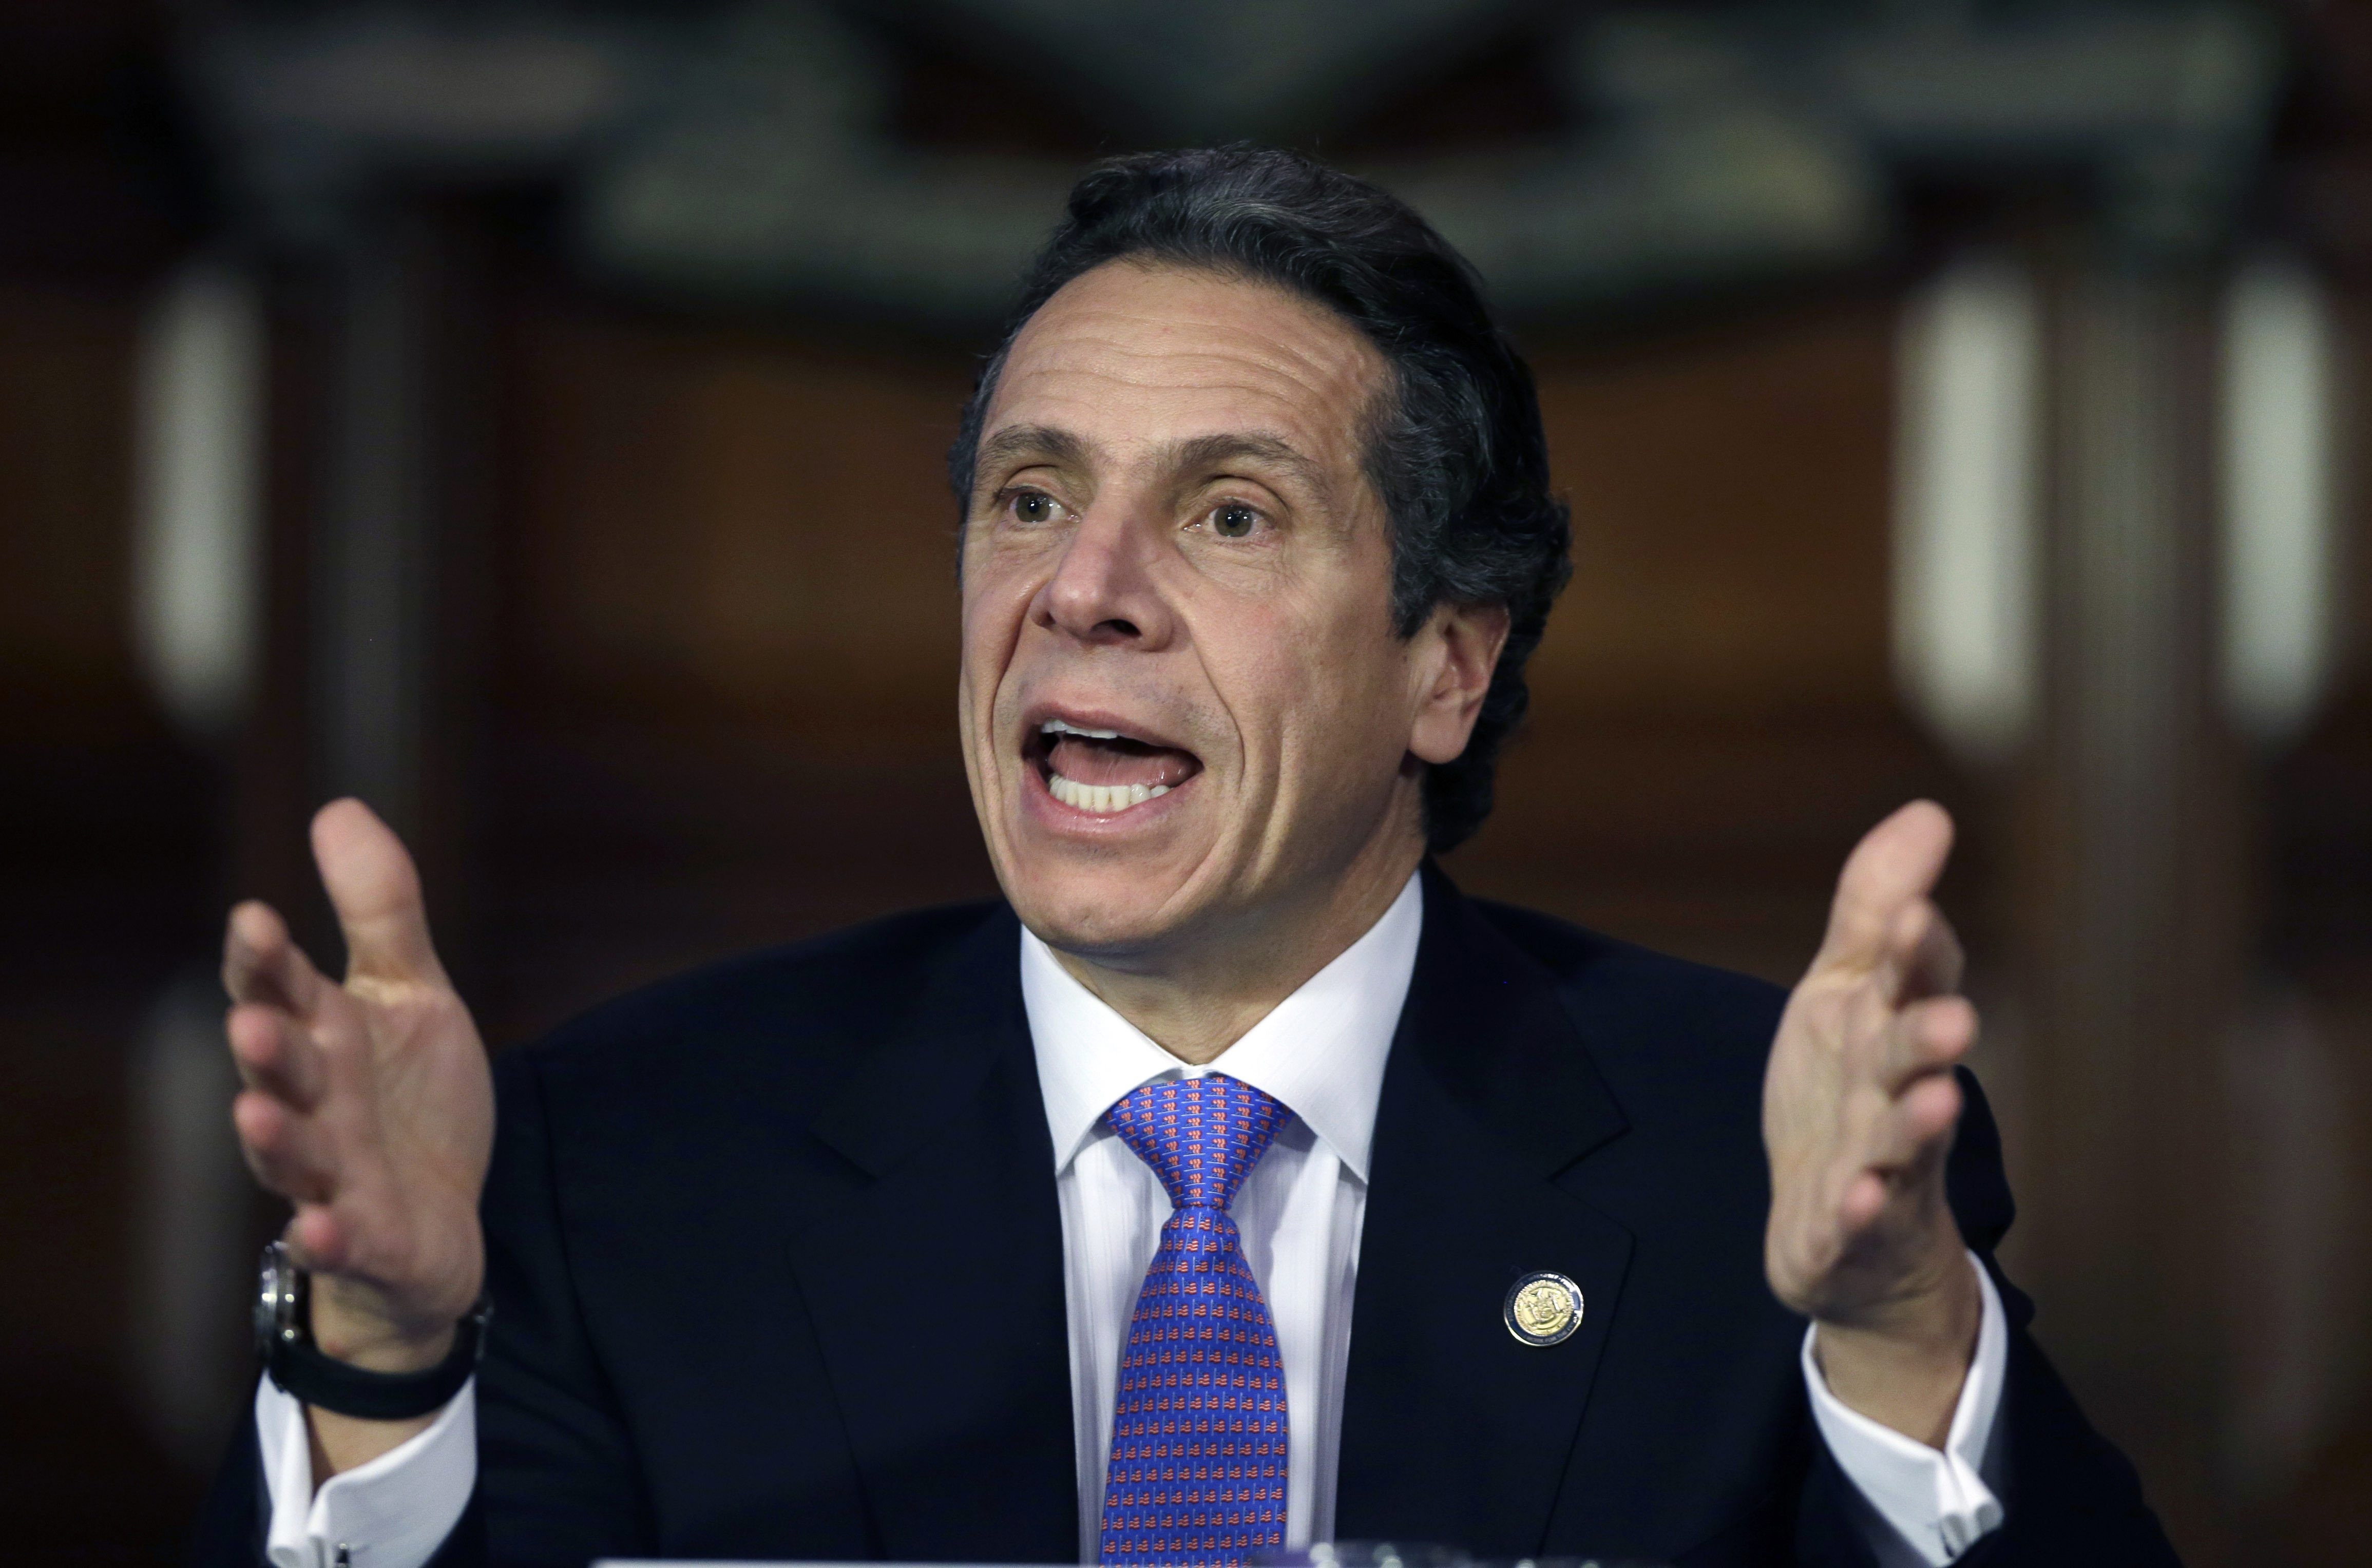 New York Gov. Andrew Cuomo has championed the cause of campaign finace reform but in the meantime is going all-out to raise money for his 2014 re-election effort.  Associated Press